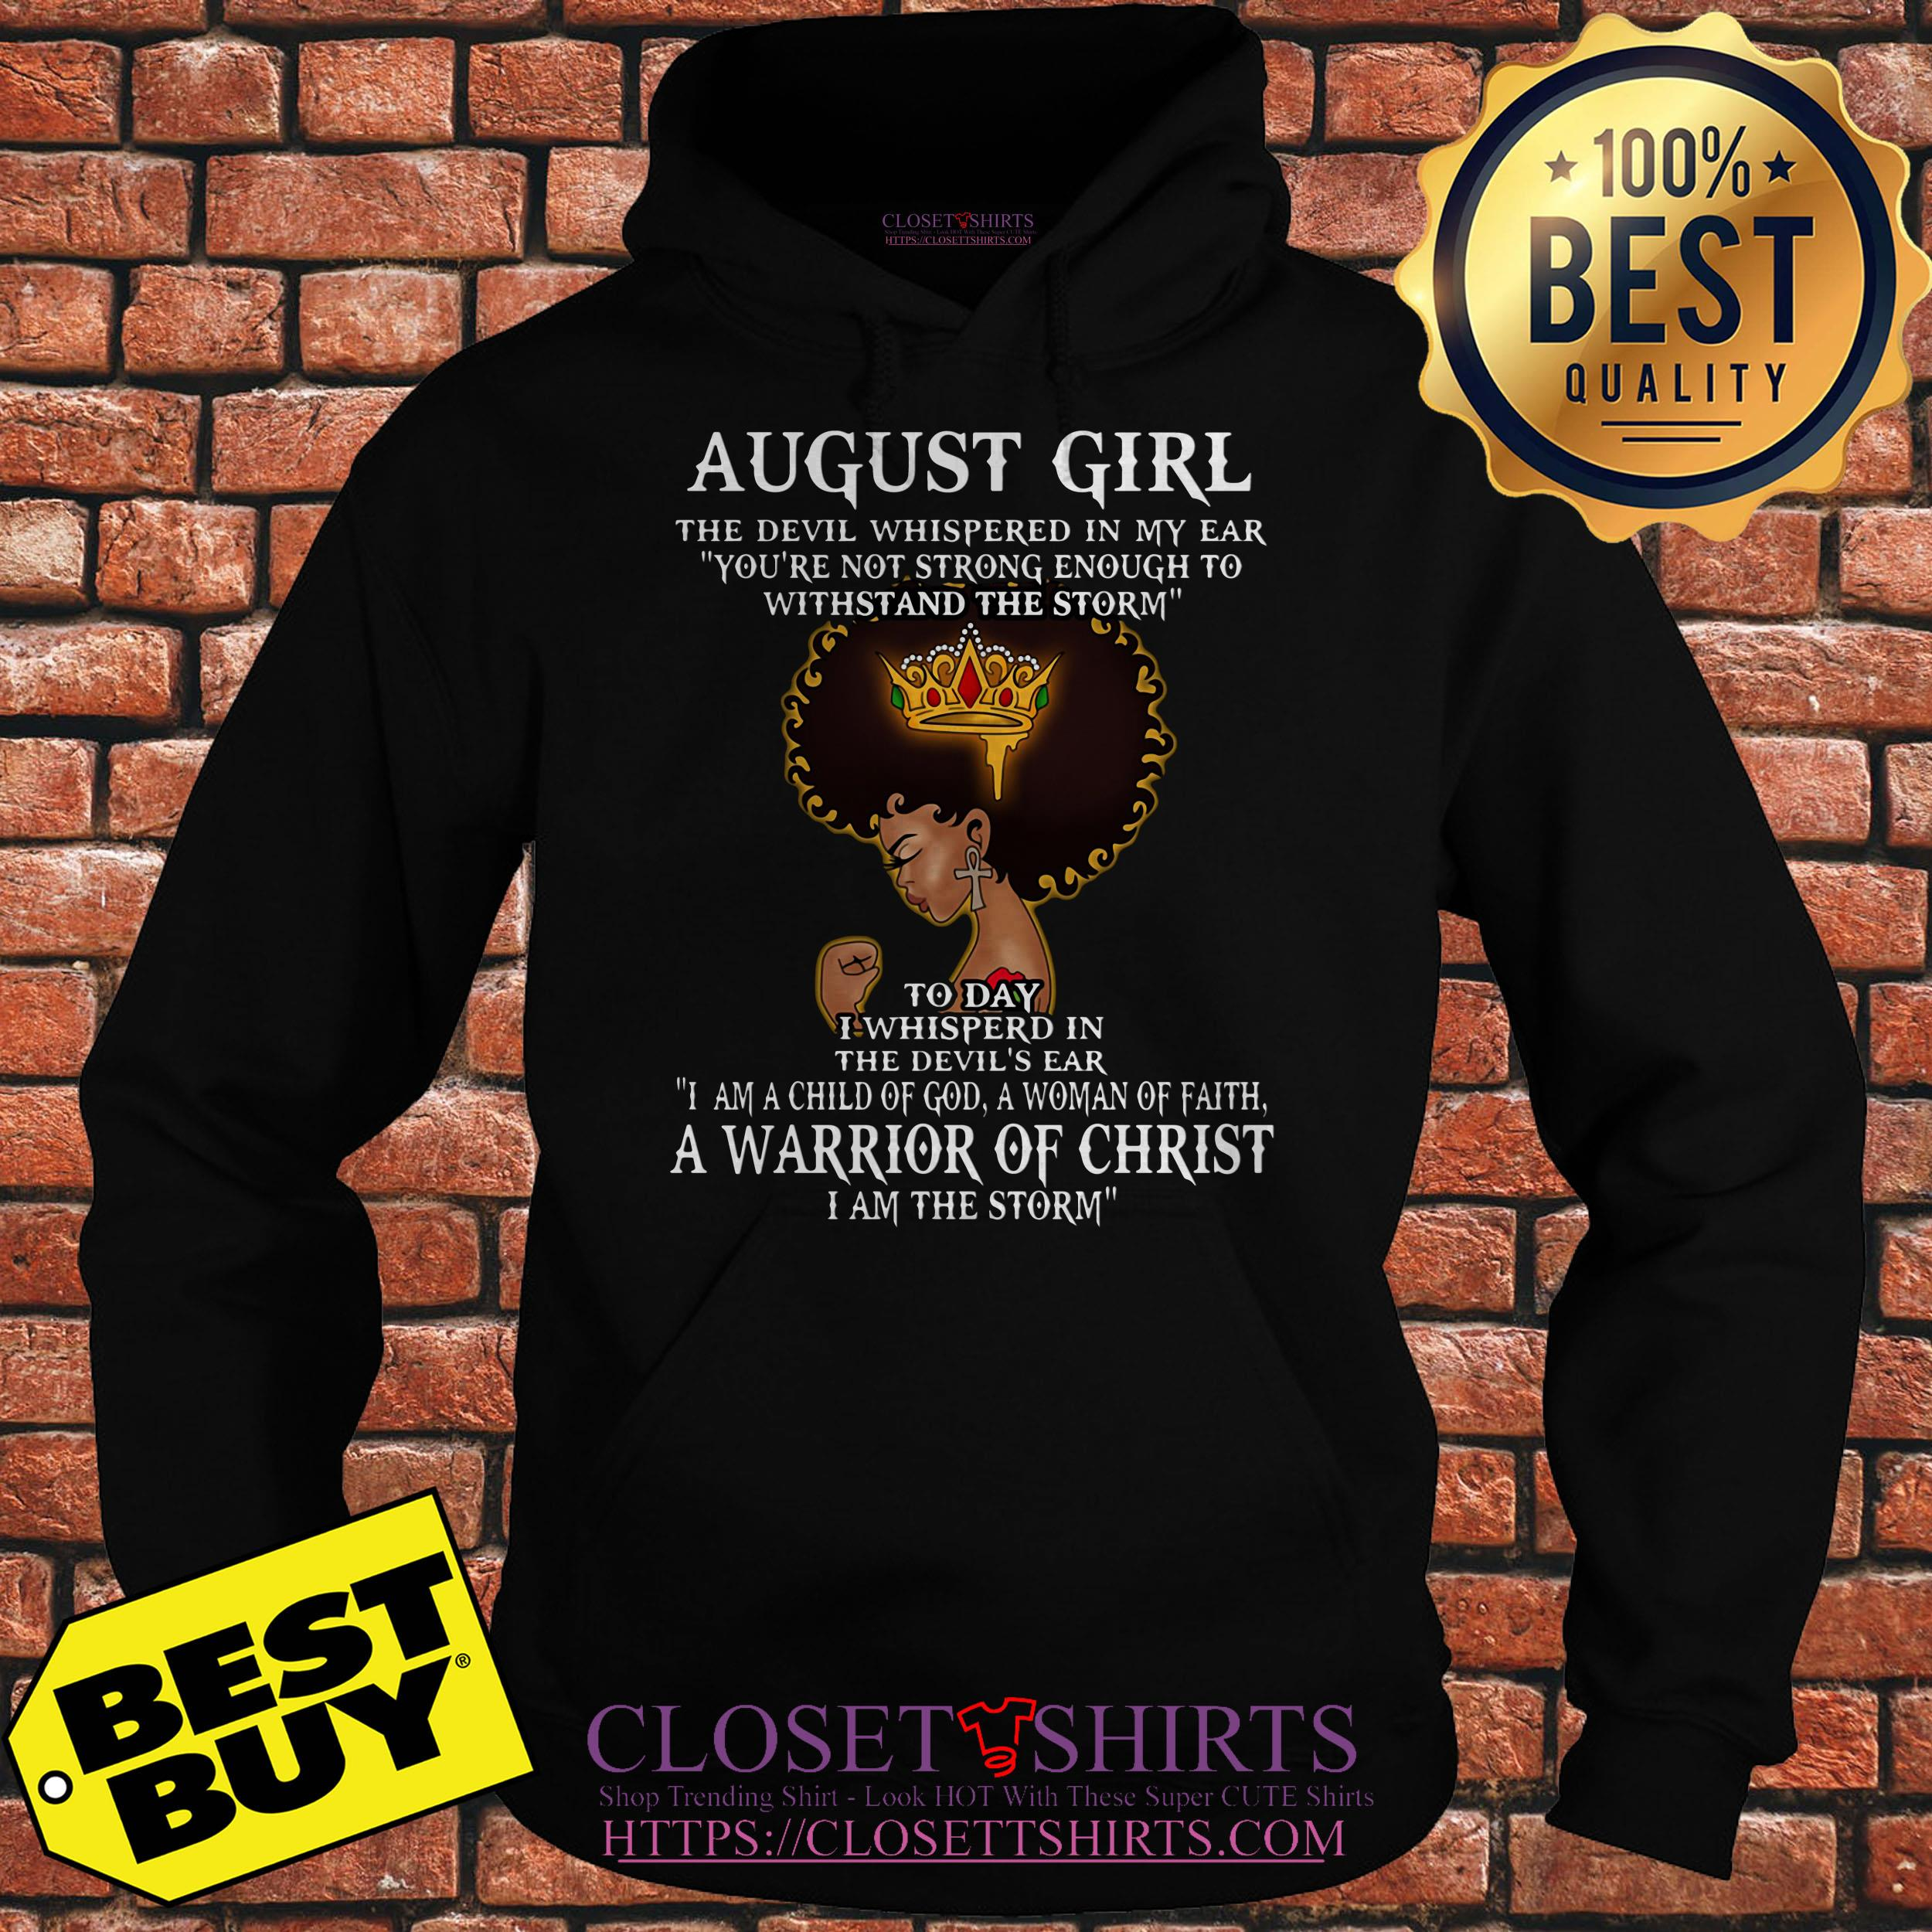 August Girl The Devil Whispered In My Ear A Warrior Of Christ hoodie